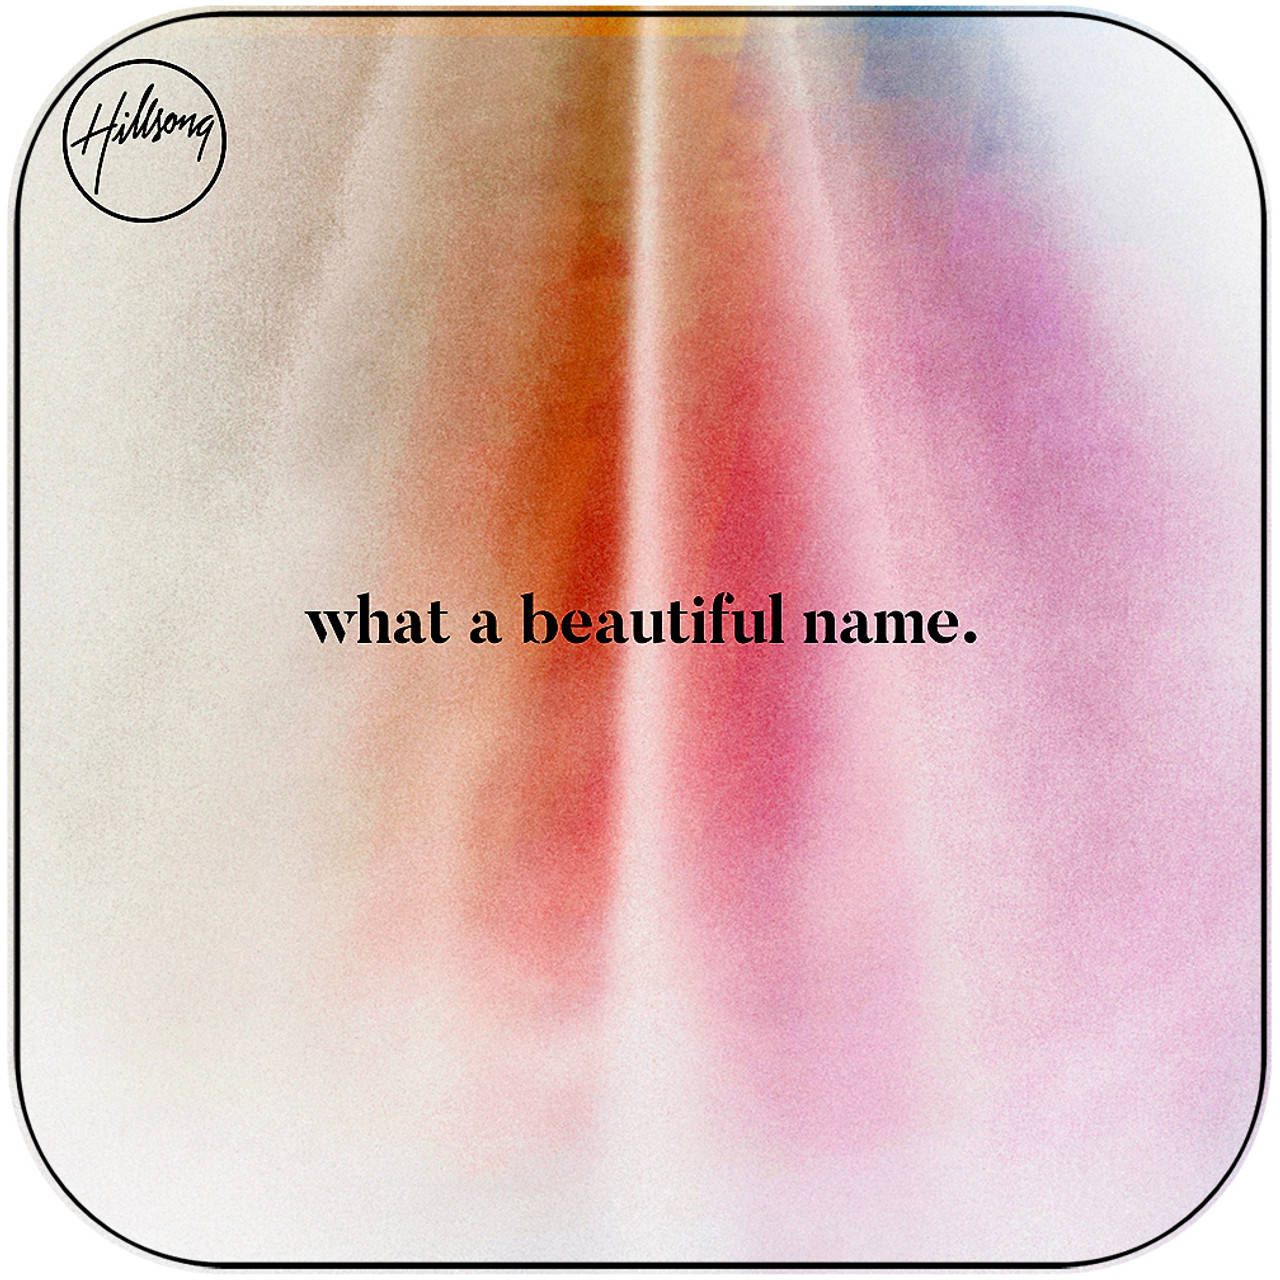 Hillsong Worship - What A Beautiful Name-1 Album Cover Sticker